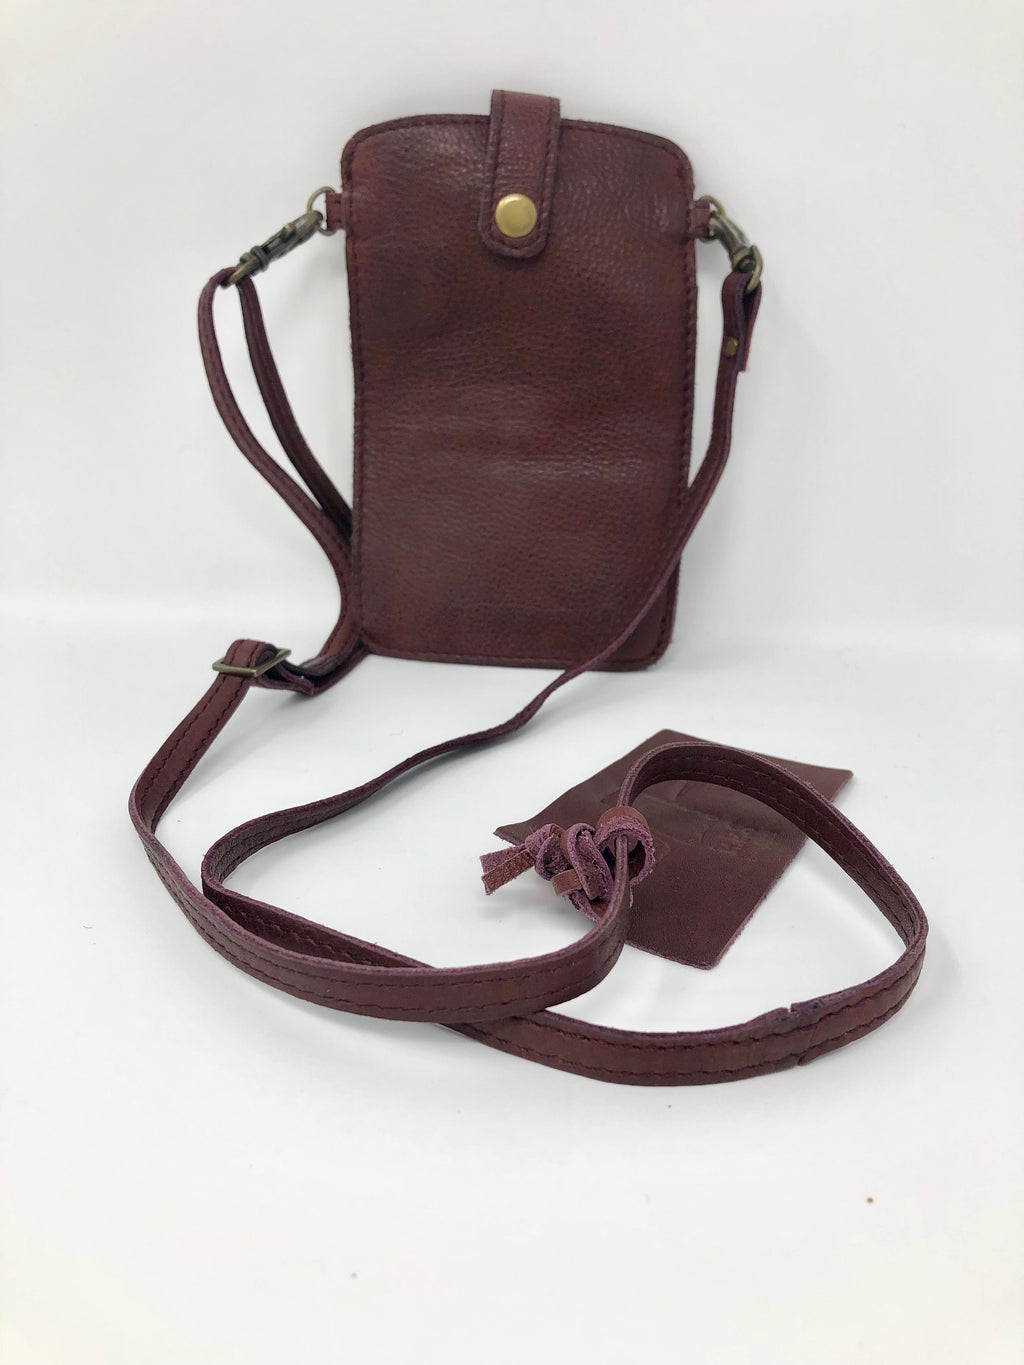 Leather Burgundy-Colored Cellular Phone/Credit Card Carry Case